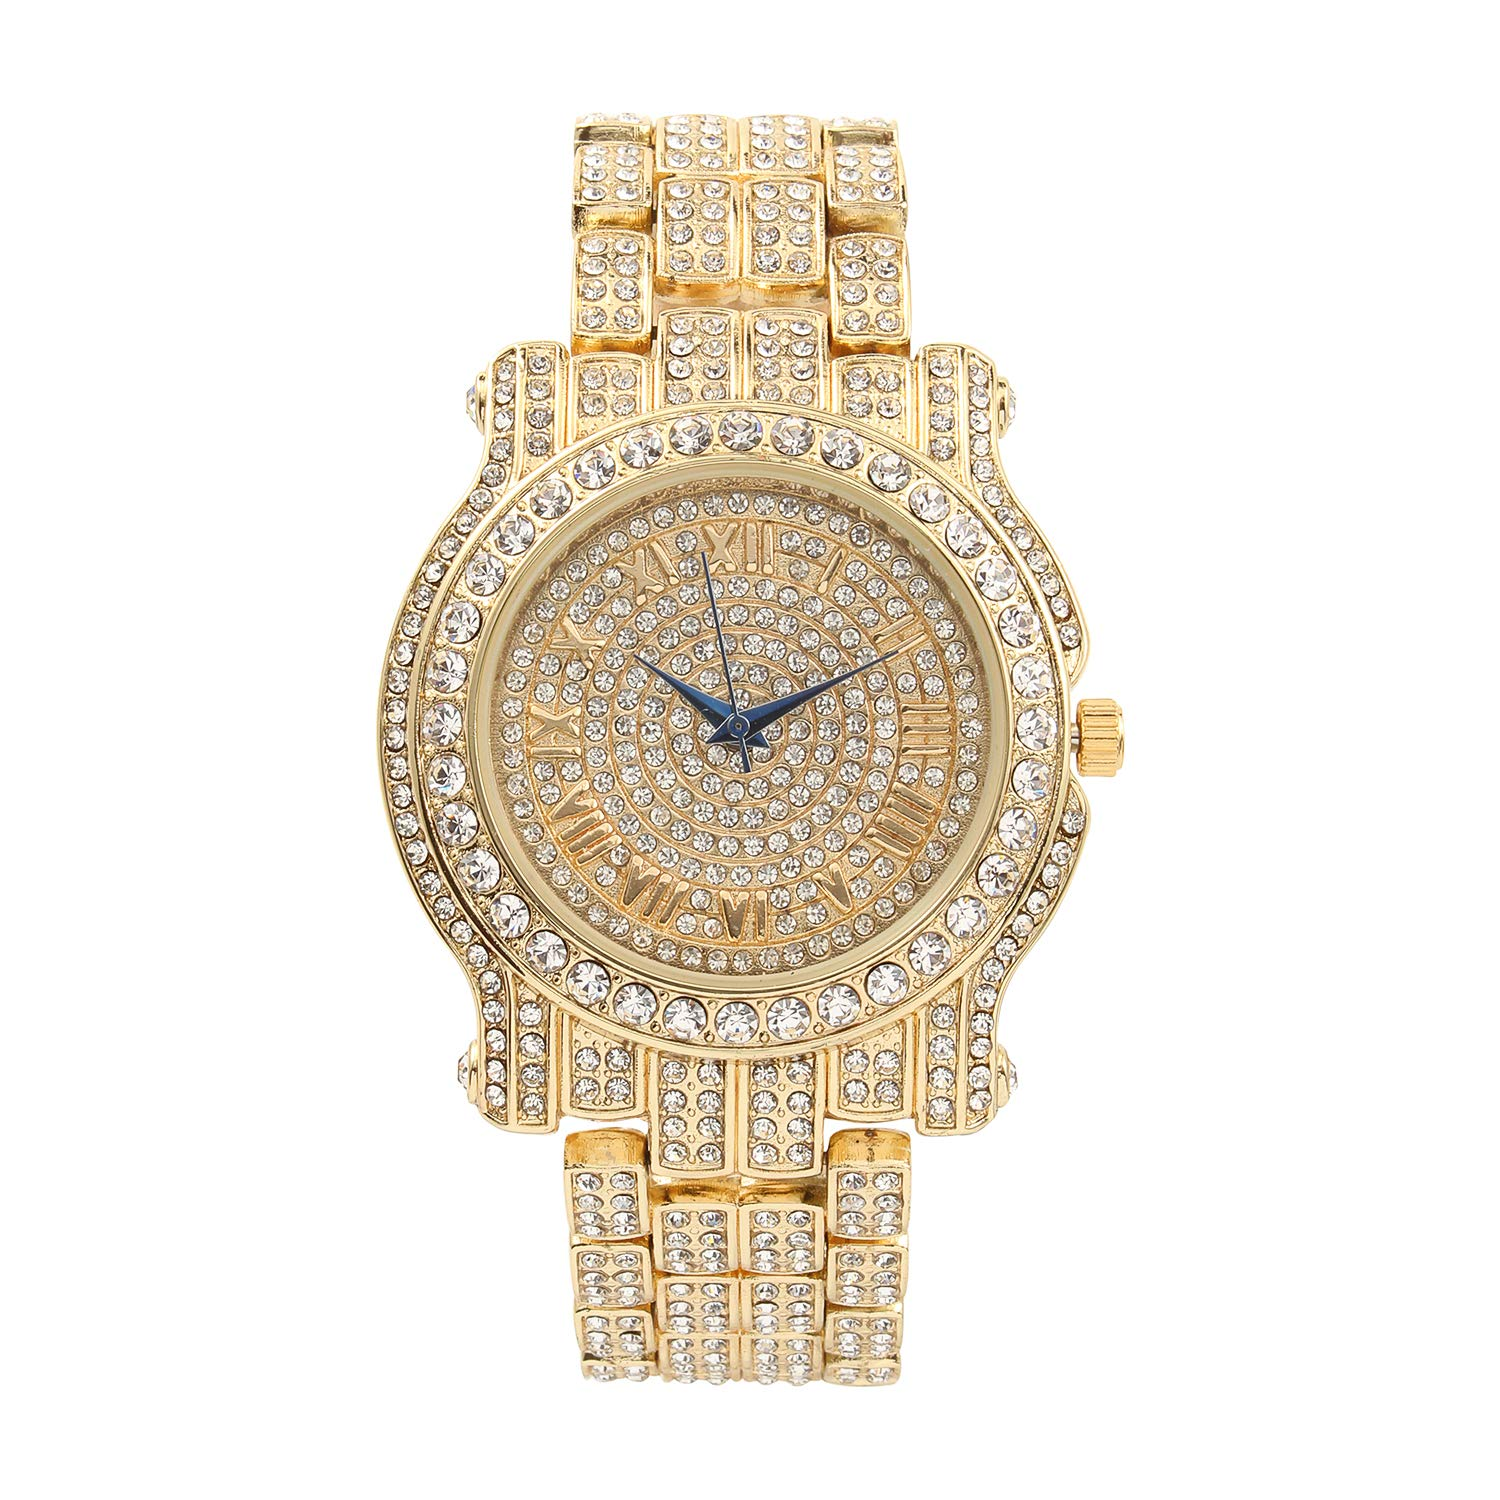 f2c6e189e88b6 The Ultimate Gold Iced Out Hip Hop Bling Bling Watch - L0504 Gold ...